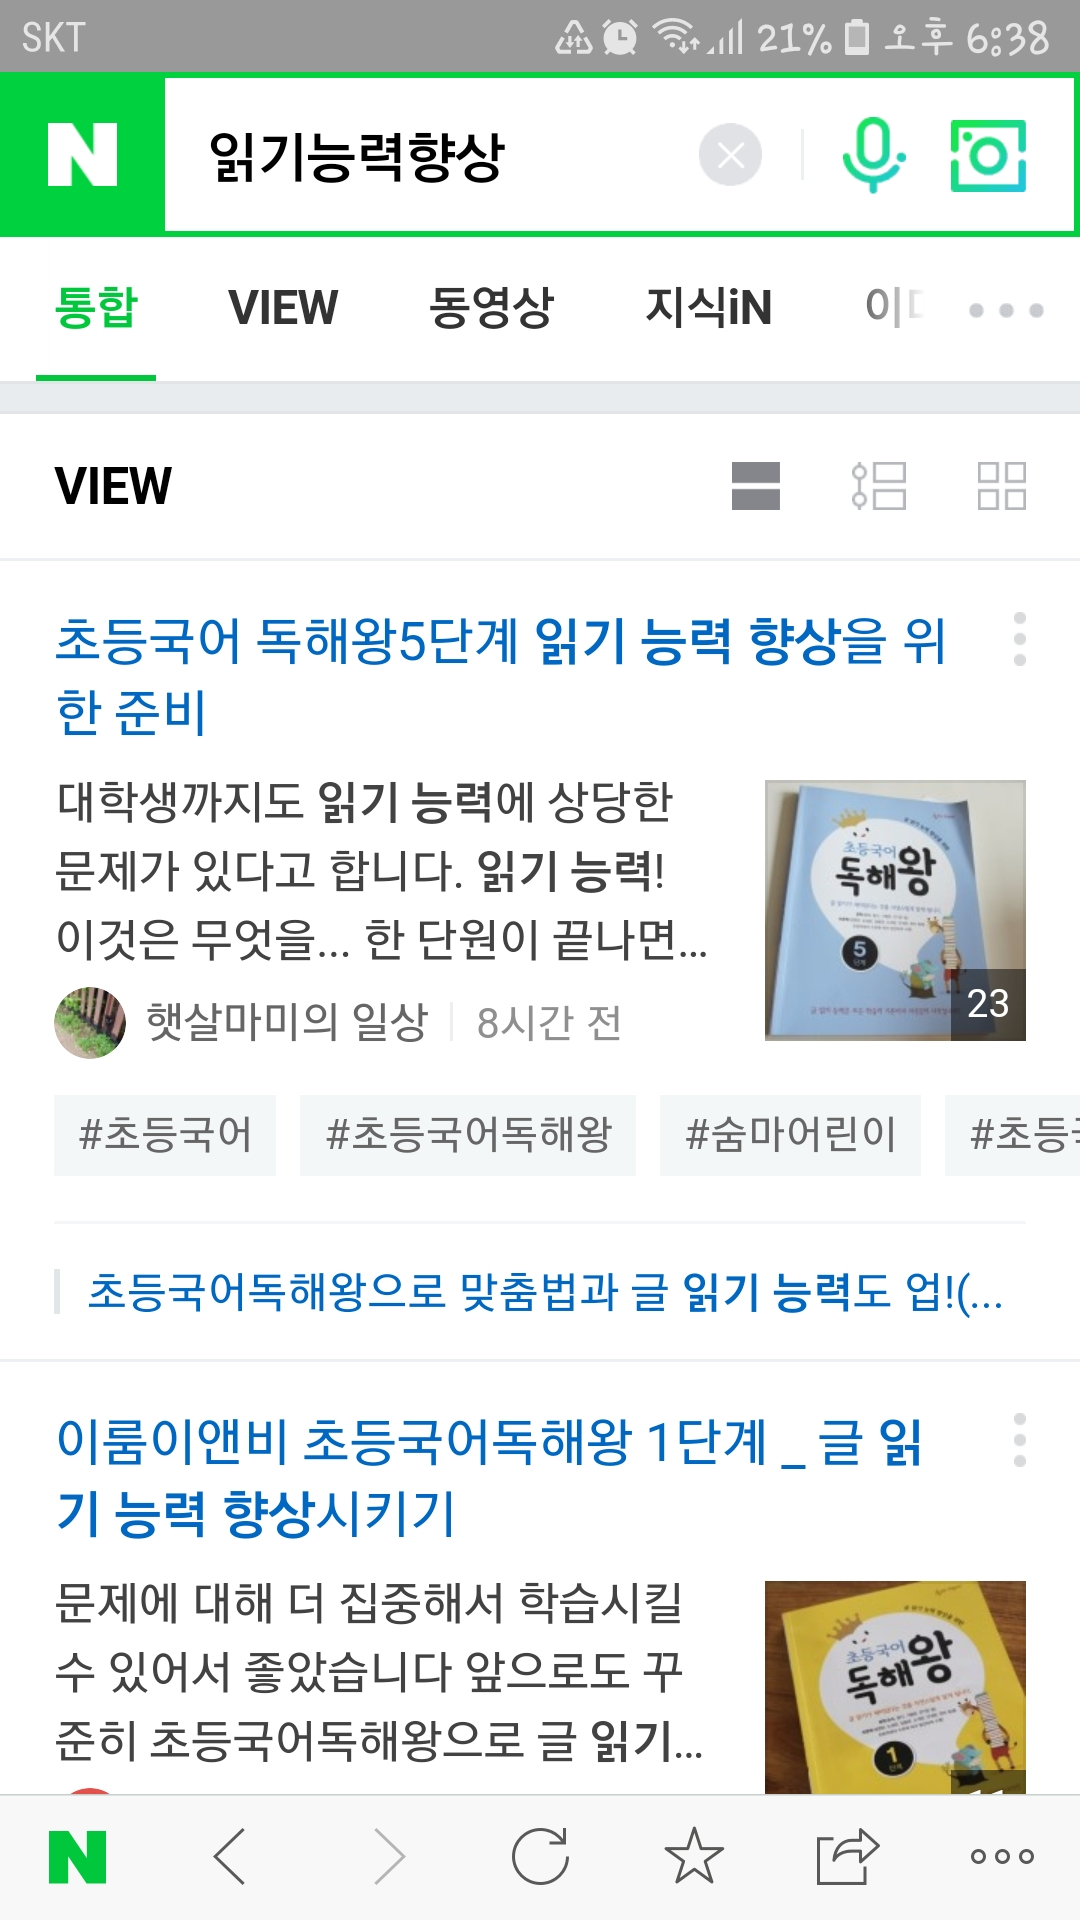 Screenshot_20190225-183840_NAVER.jpg